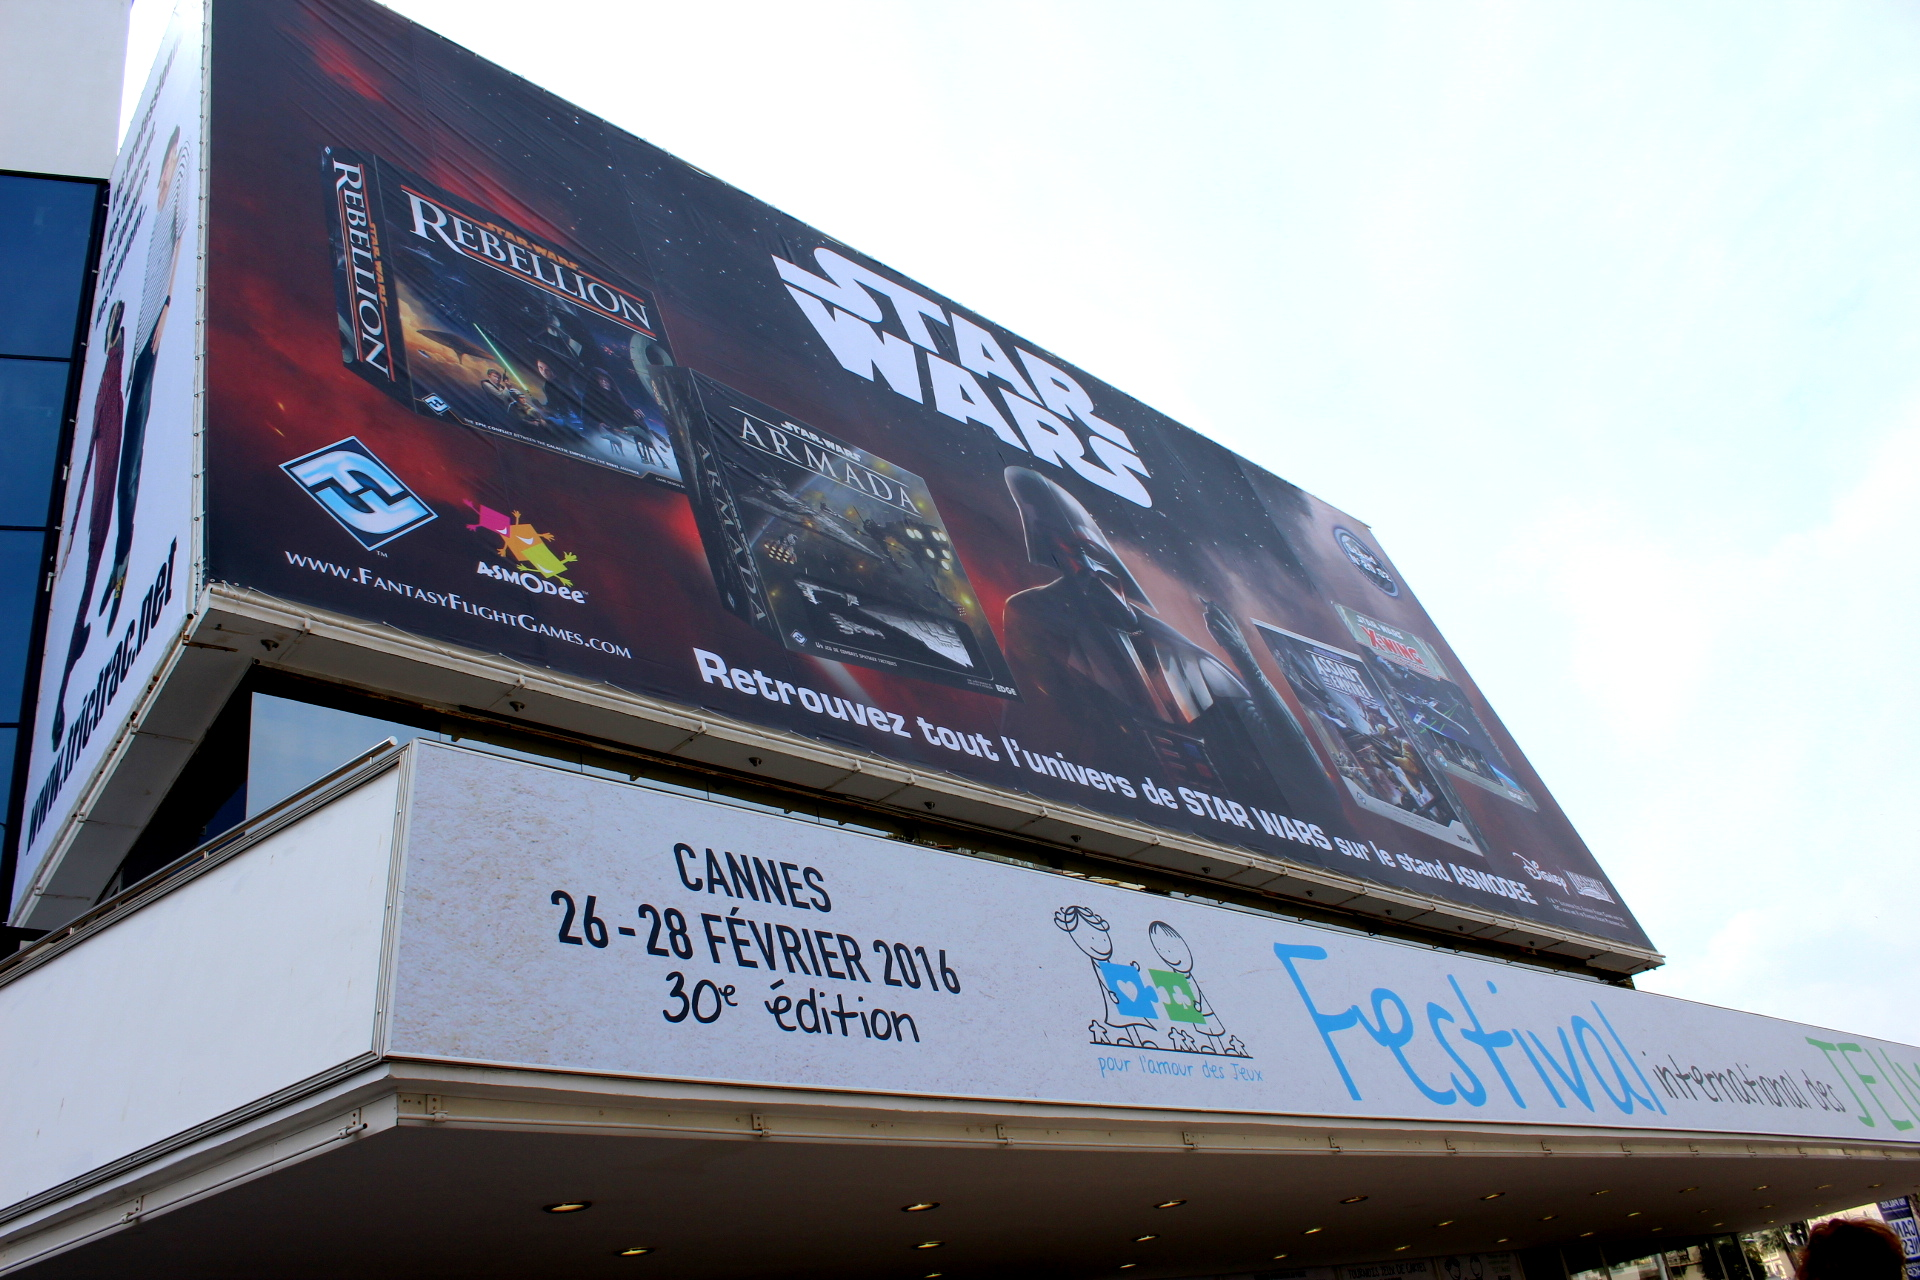 Festival International des Jeux de Cannes - 2016